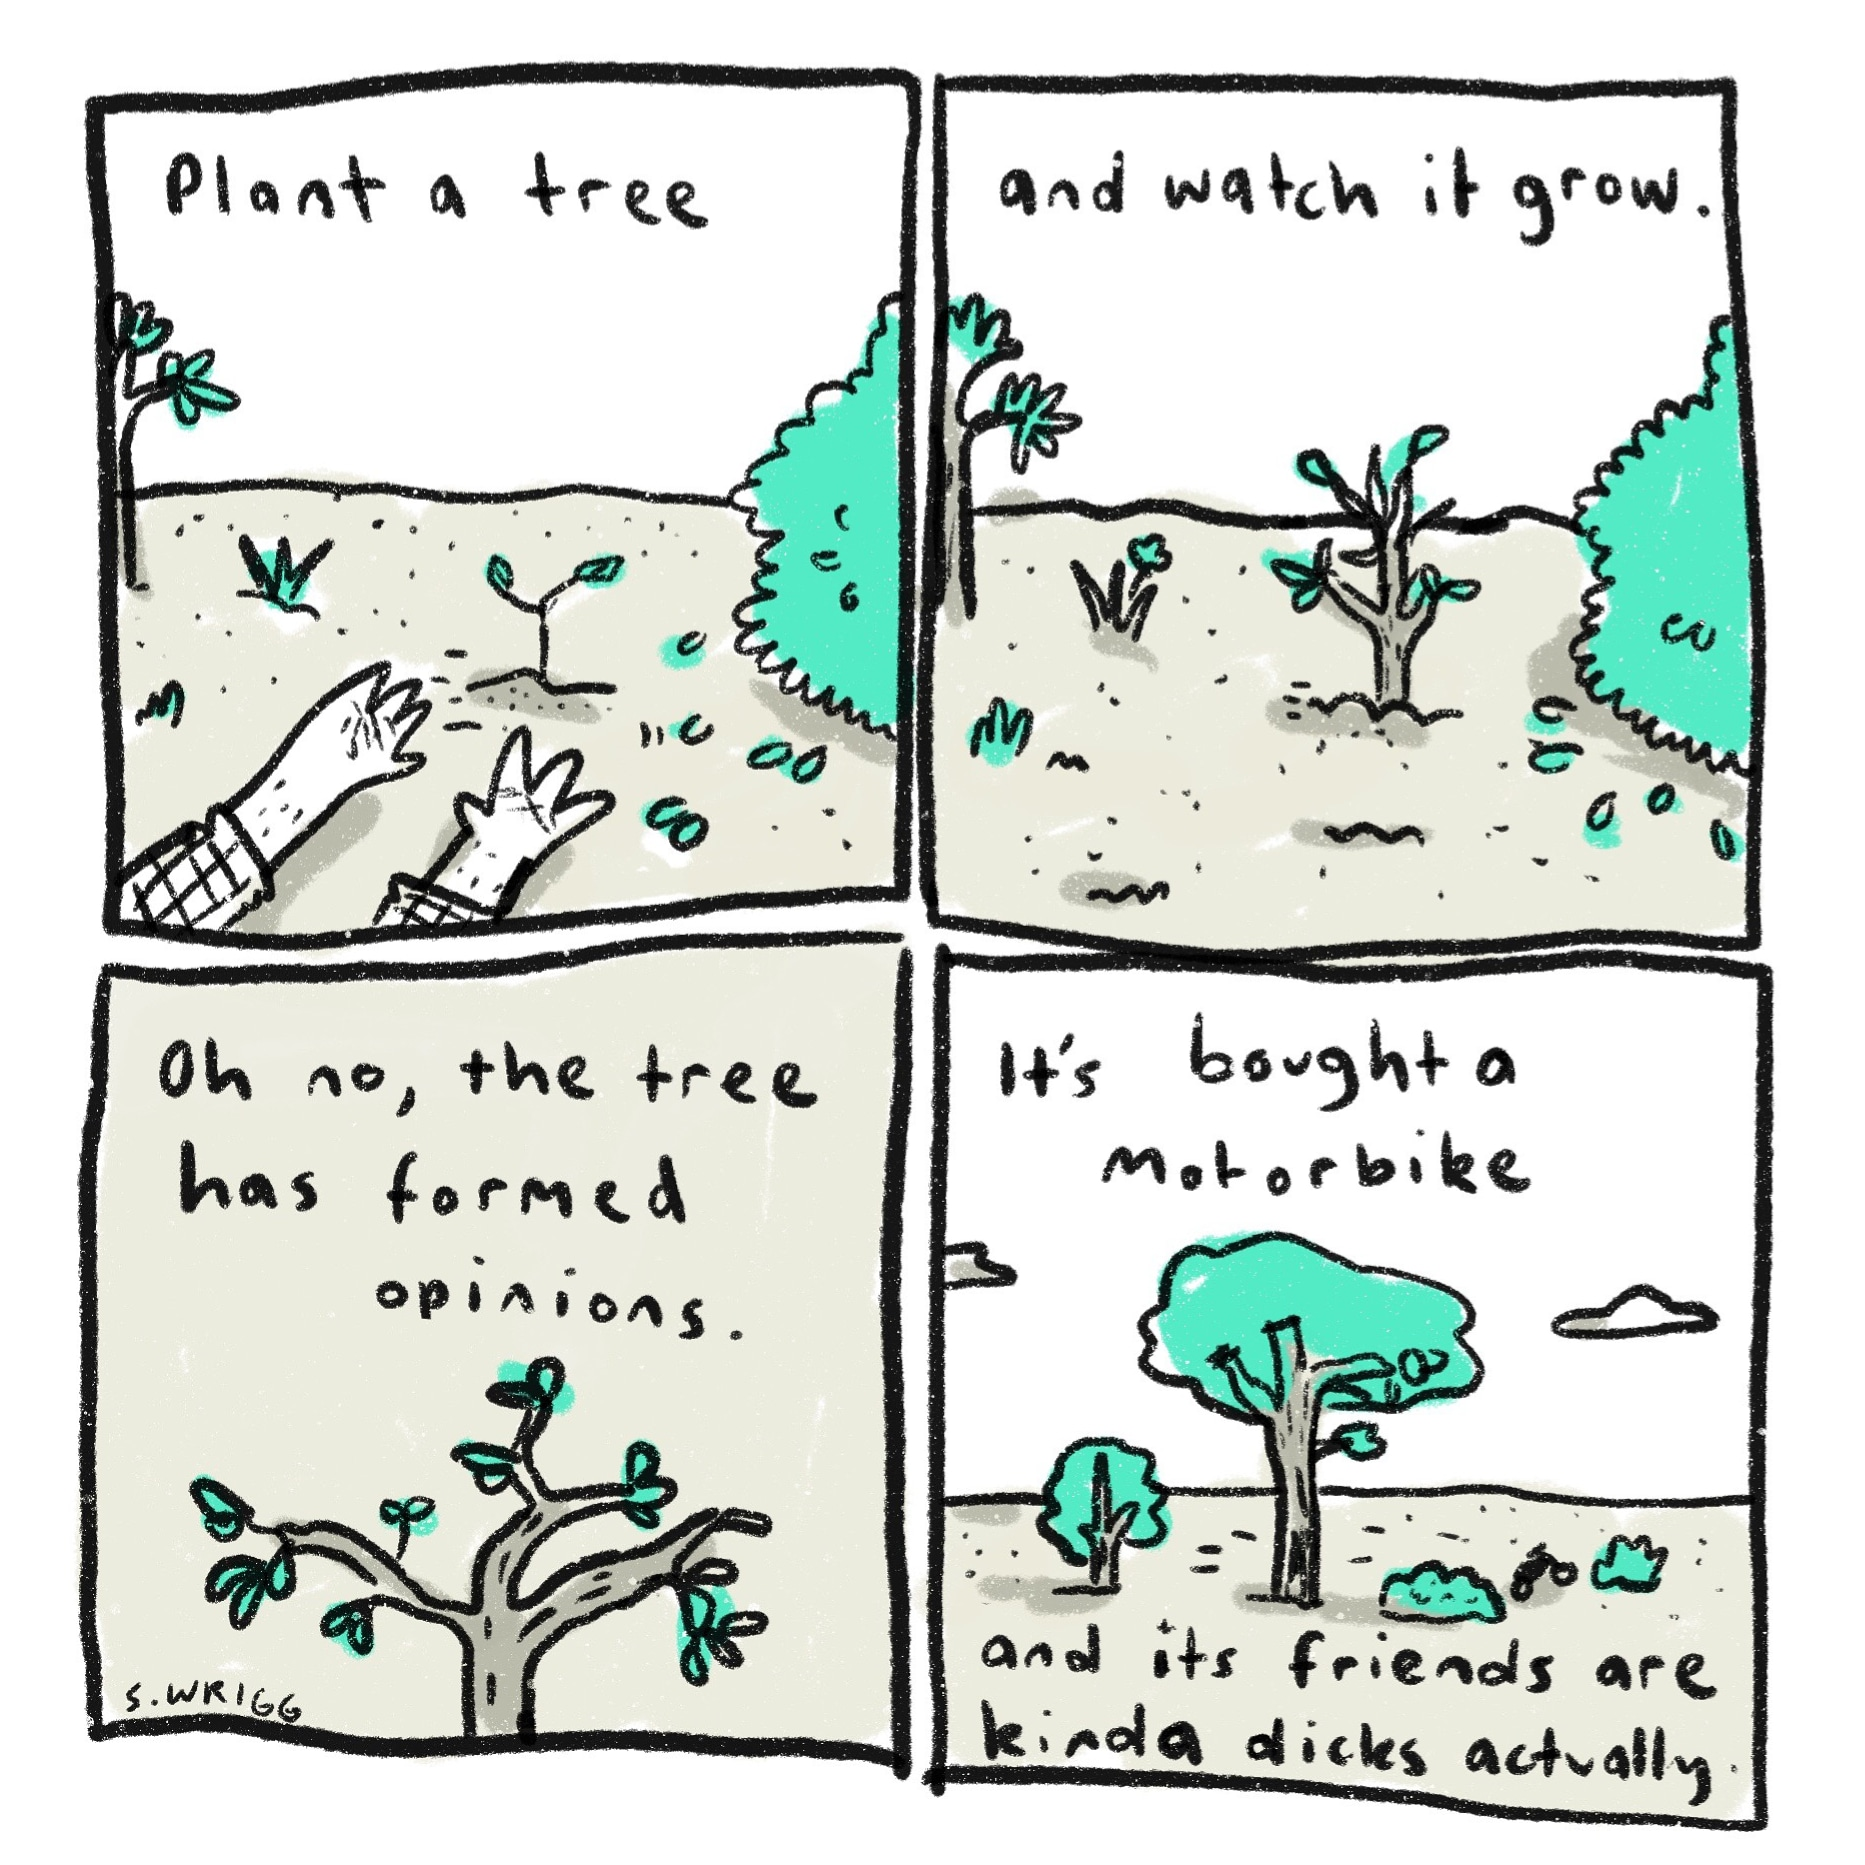 Plant a tree - scott wrigg